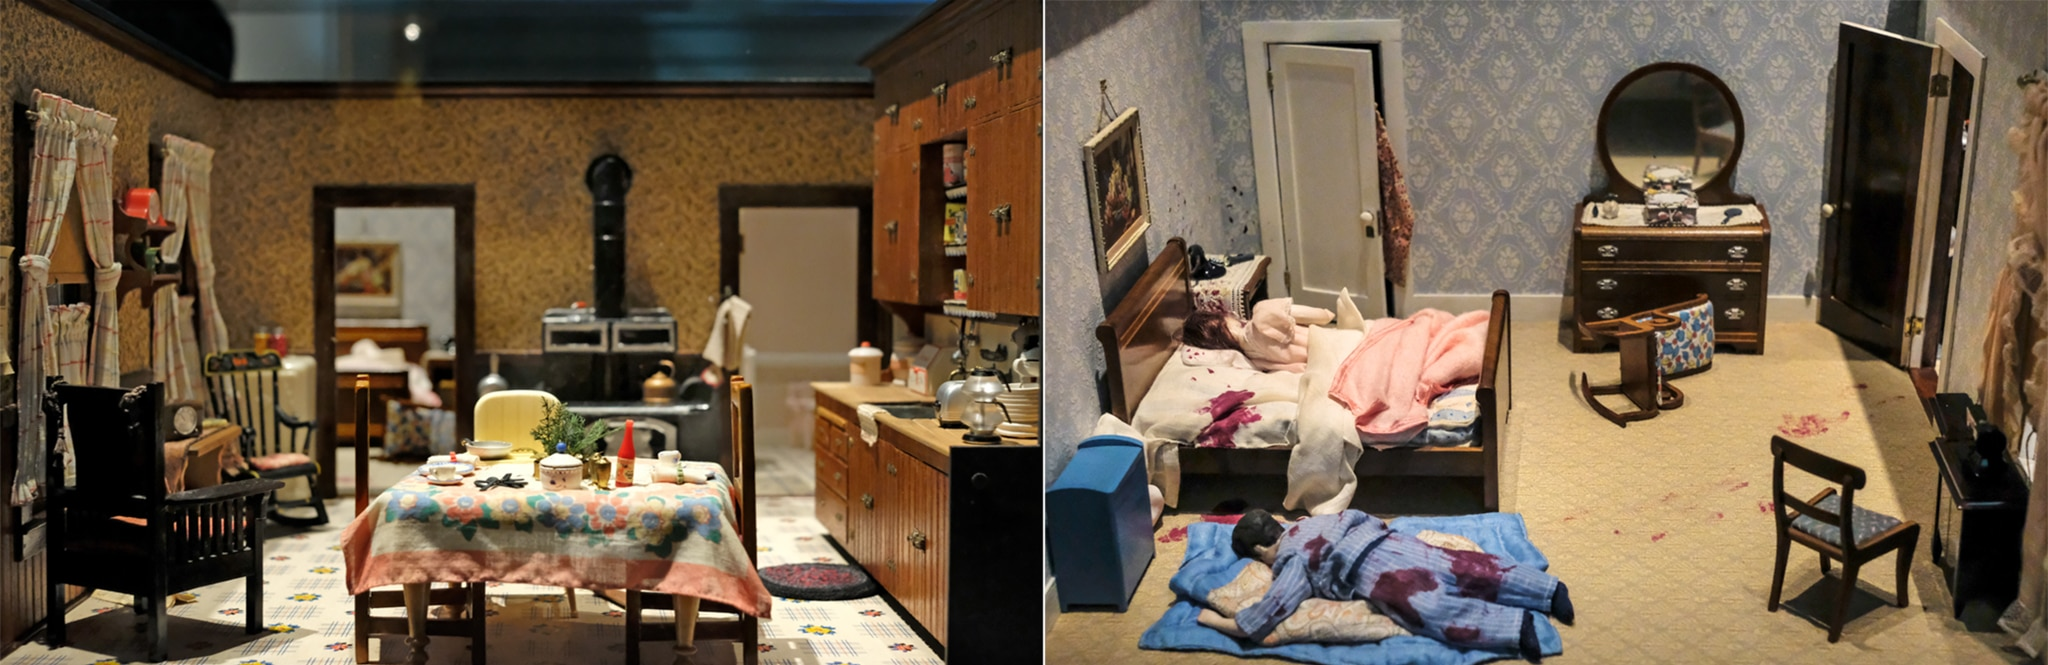 Miniature kitchen on left and bedroom scene on right with two dolls representing dead bodies (State Dept./S.L. Brukbacher)